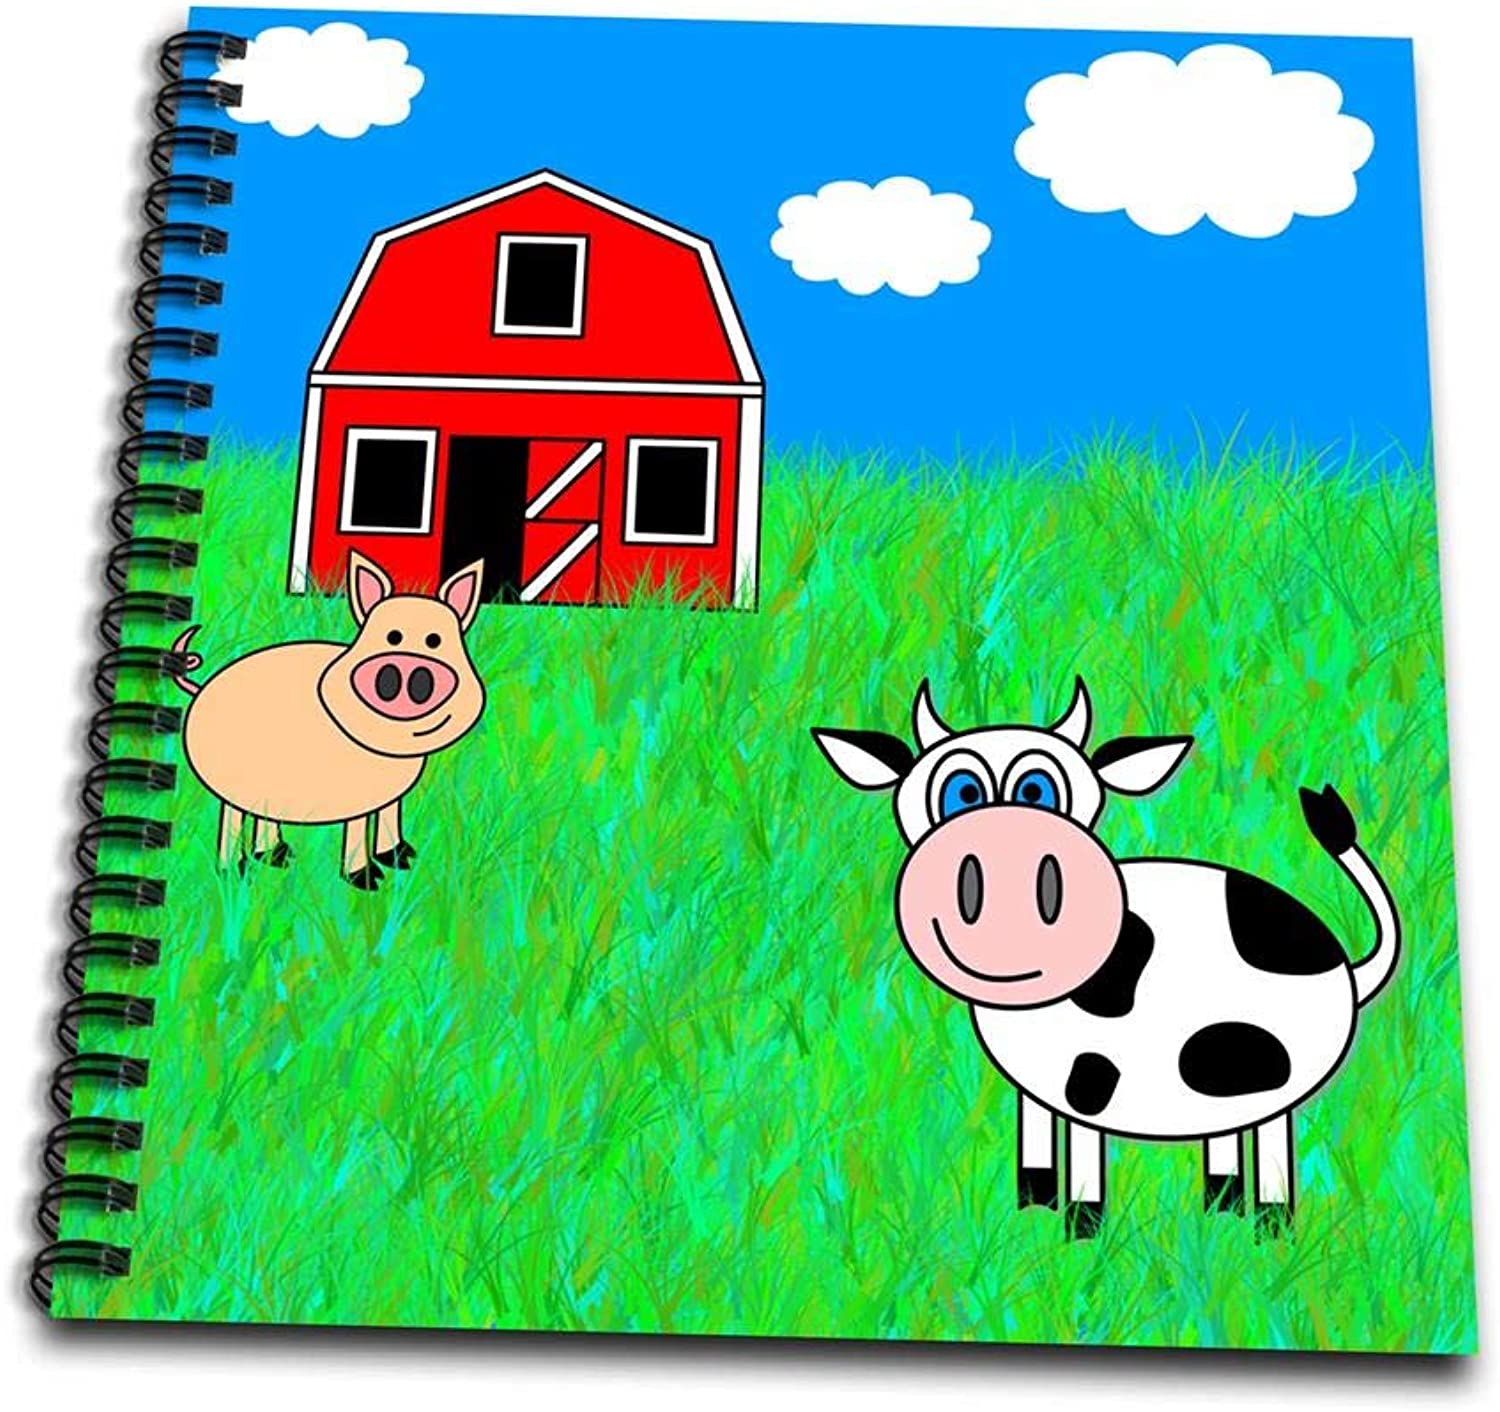 3dpink on The FarmCow, Pig and BarnDrawing Book, 8 by 8  (db_6344_1)